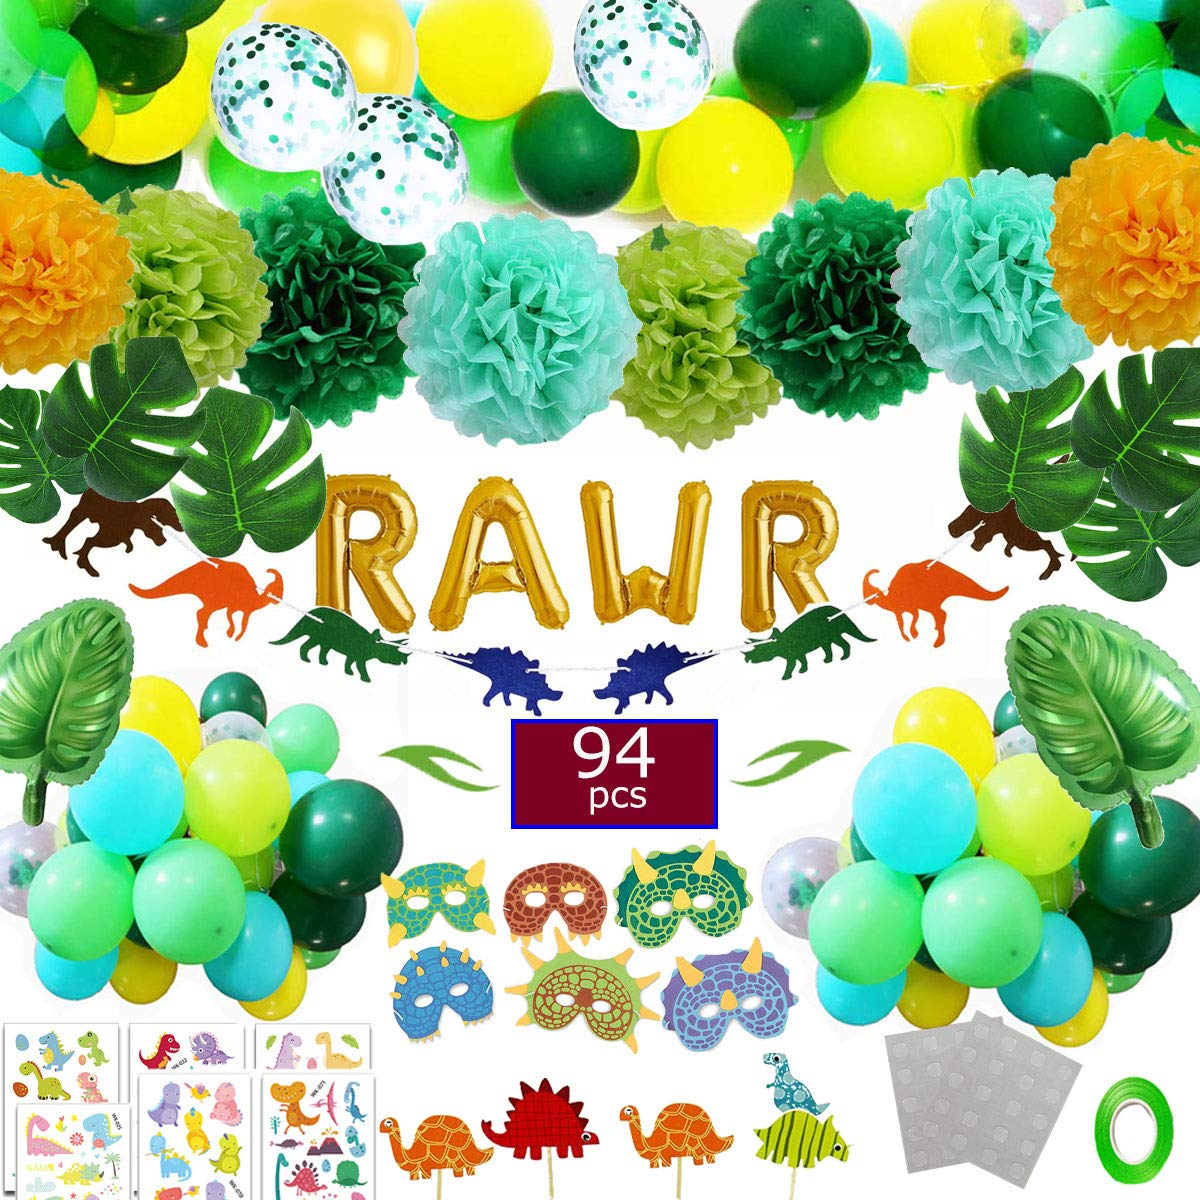 Funnlot Dinosaur Party Supplies 94PCS Dino Party Favors Including RWAR Latex Balloons Dino Masks Dino Banners Cake Toppers Tattoos Tropical palm leaves and poms flowers forboysBaby Shower Party by Funnlot